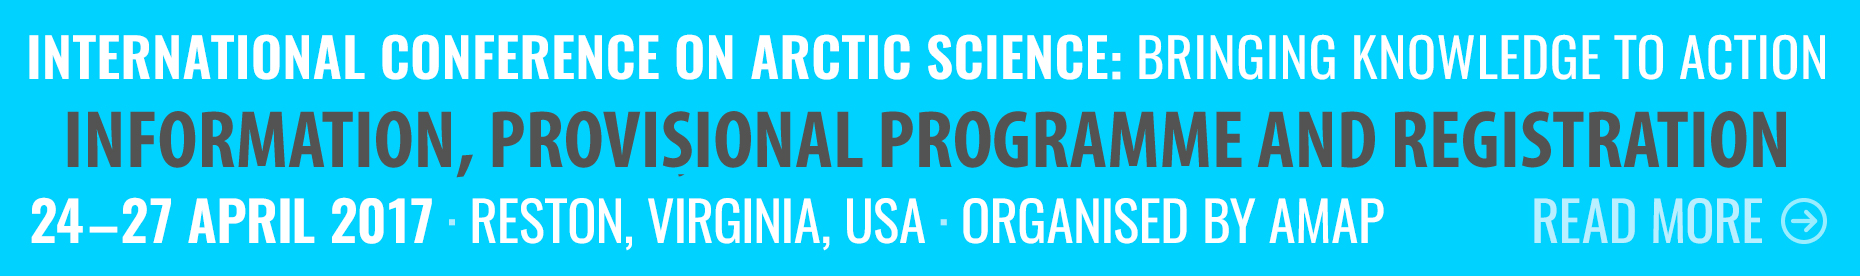 International Conference on Arctic Science: Information, provisional programme and registration